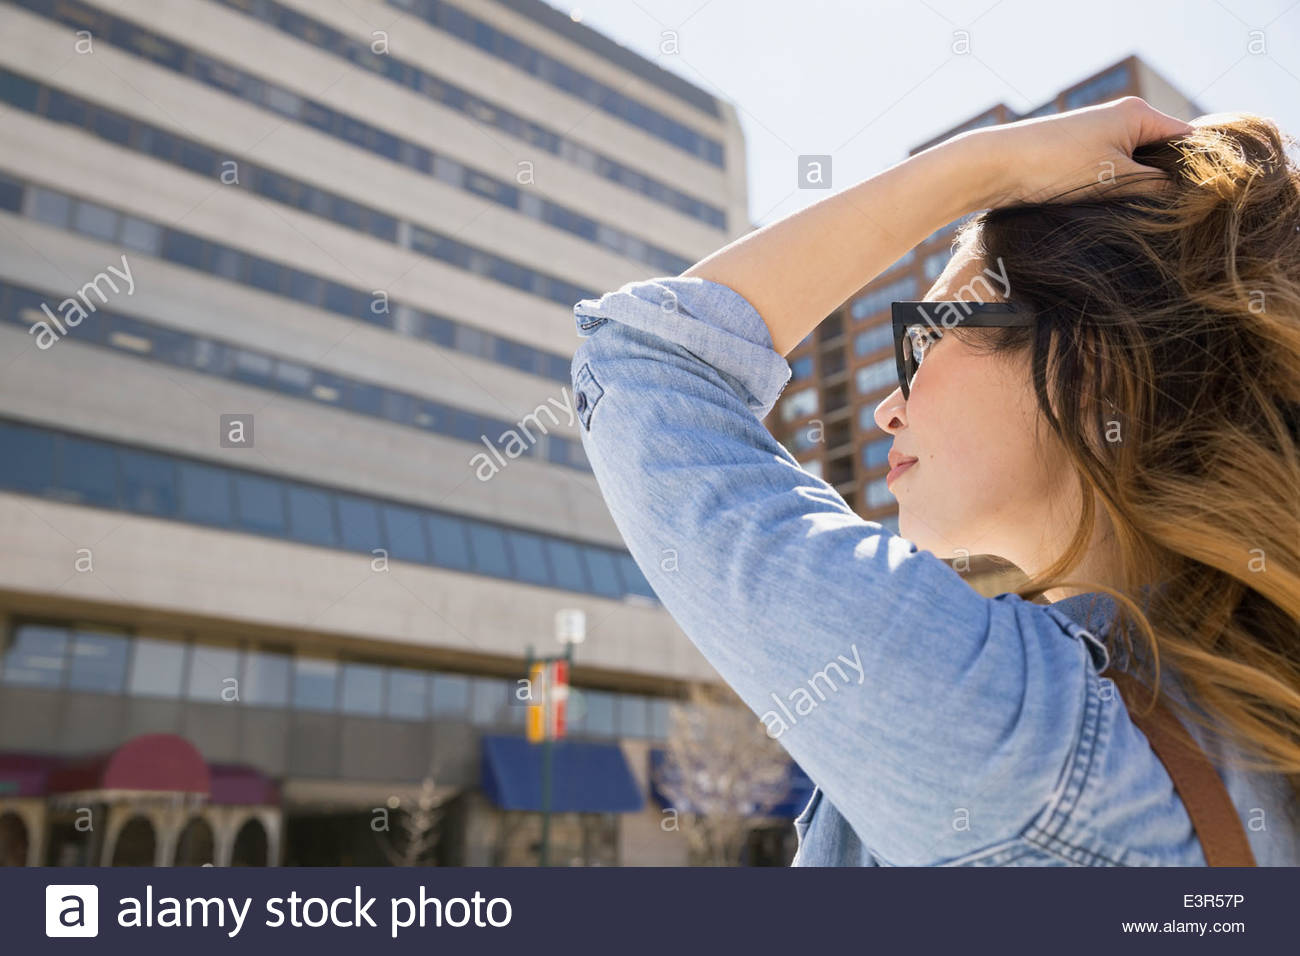 Woman with hand in hair on sunny urban street - Stock Image